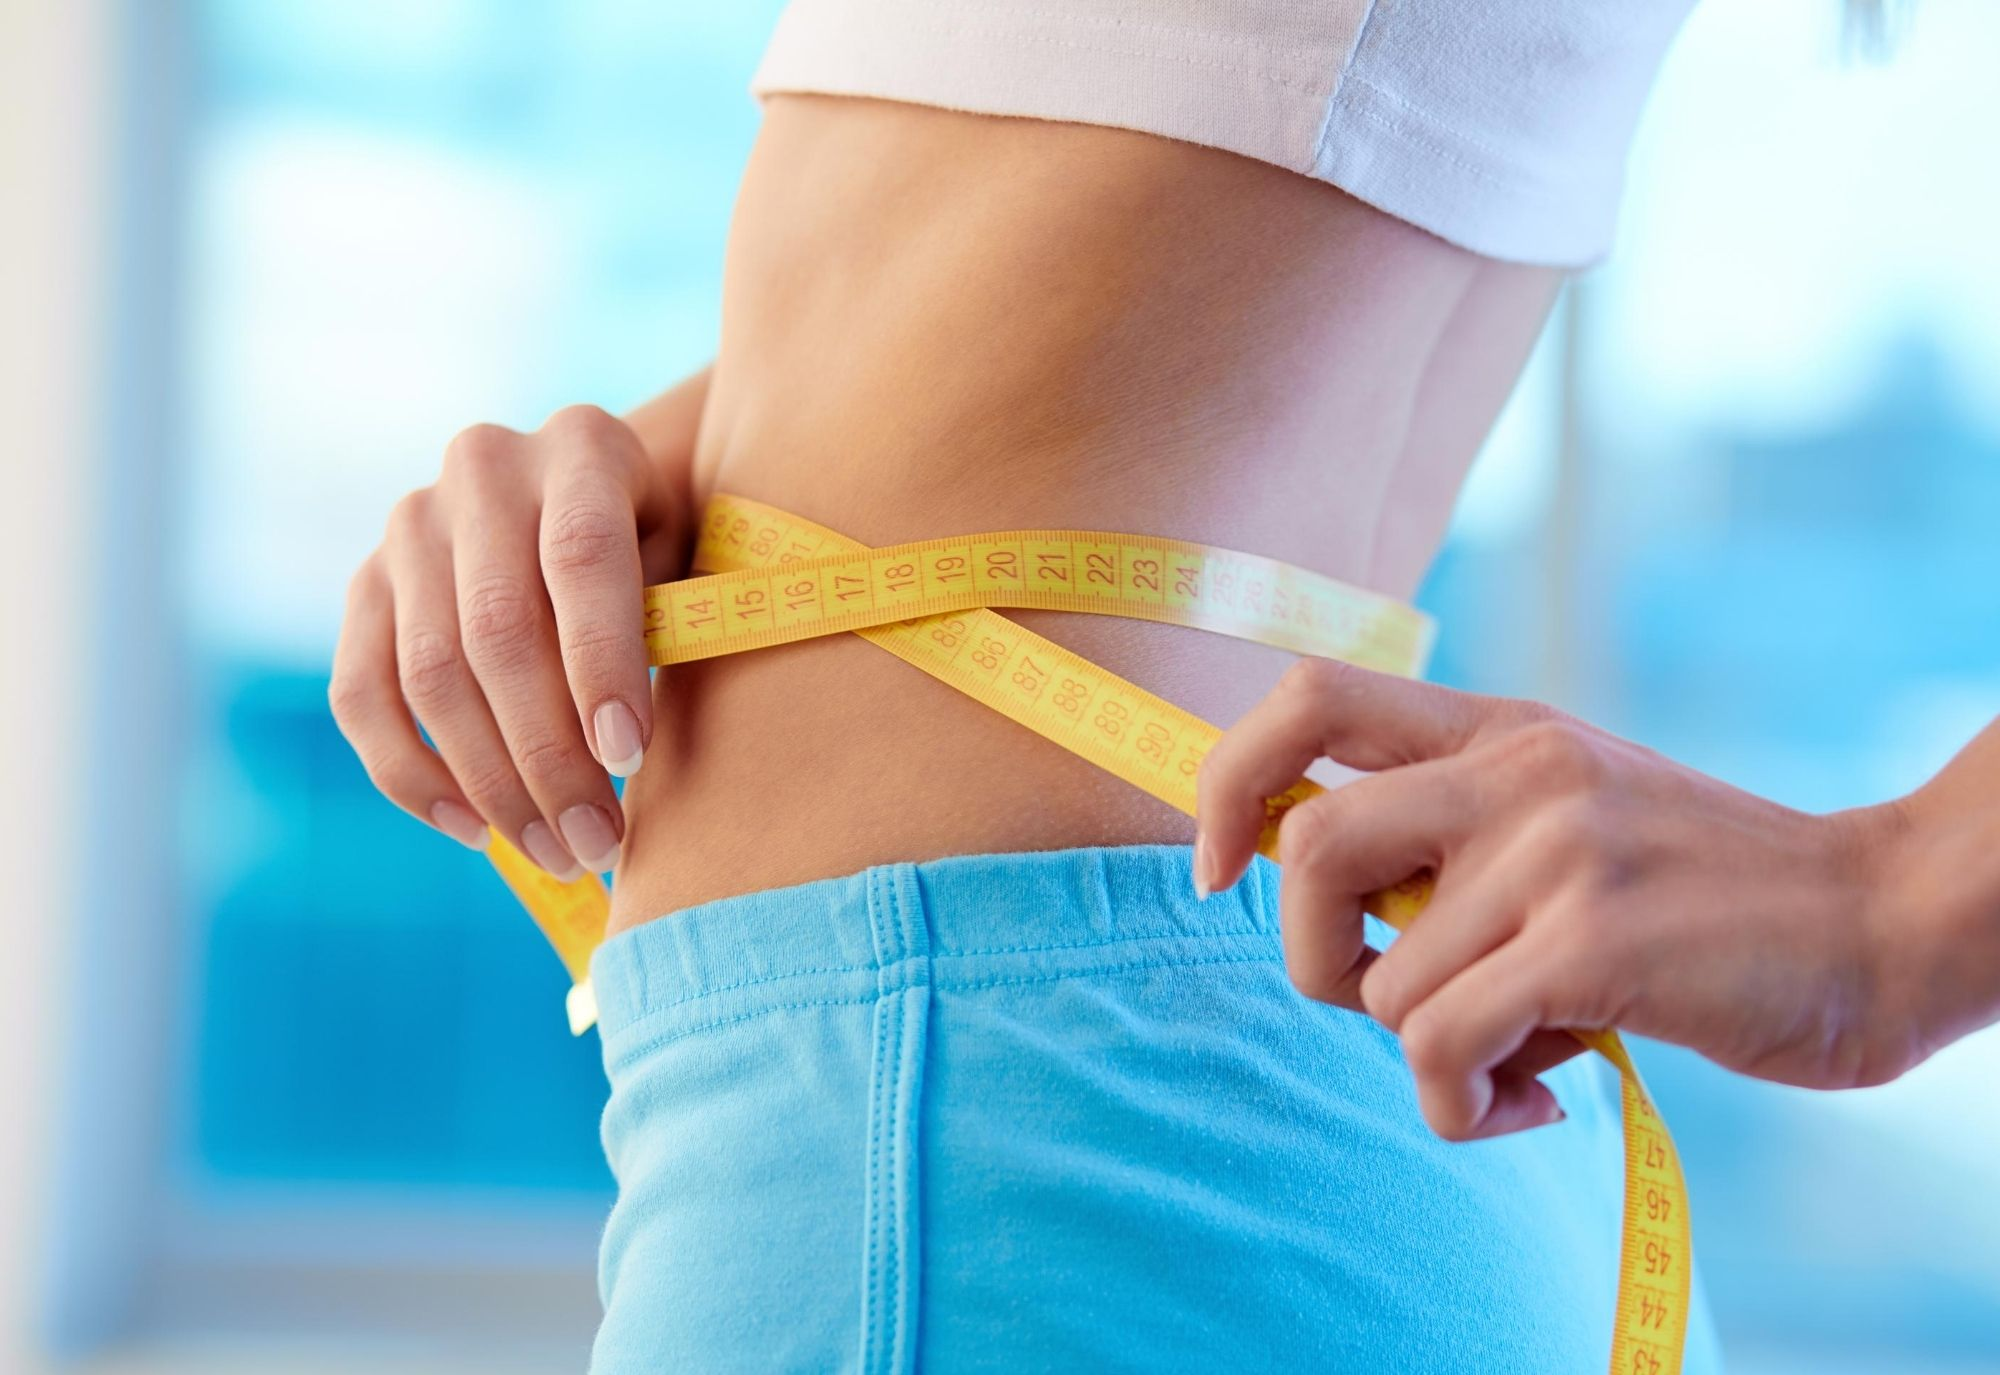 Stabilizing your weight after a diet: 12 good ways